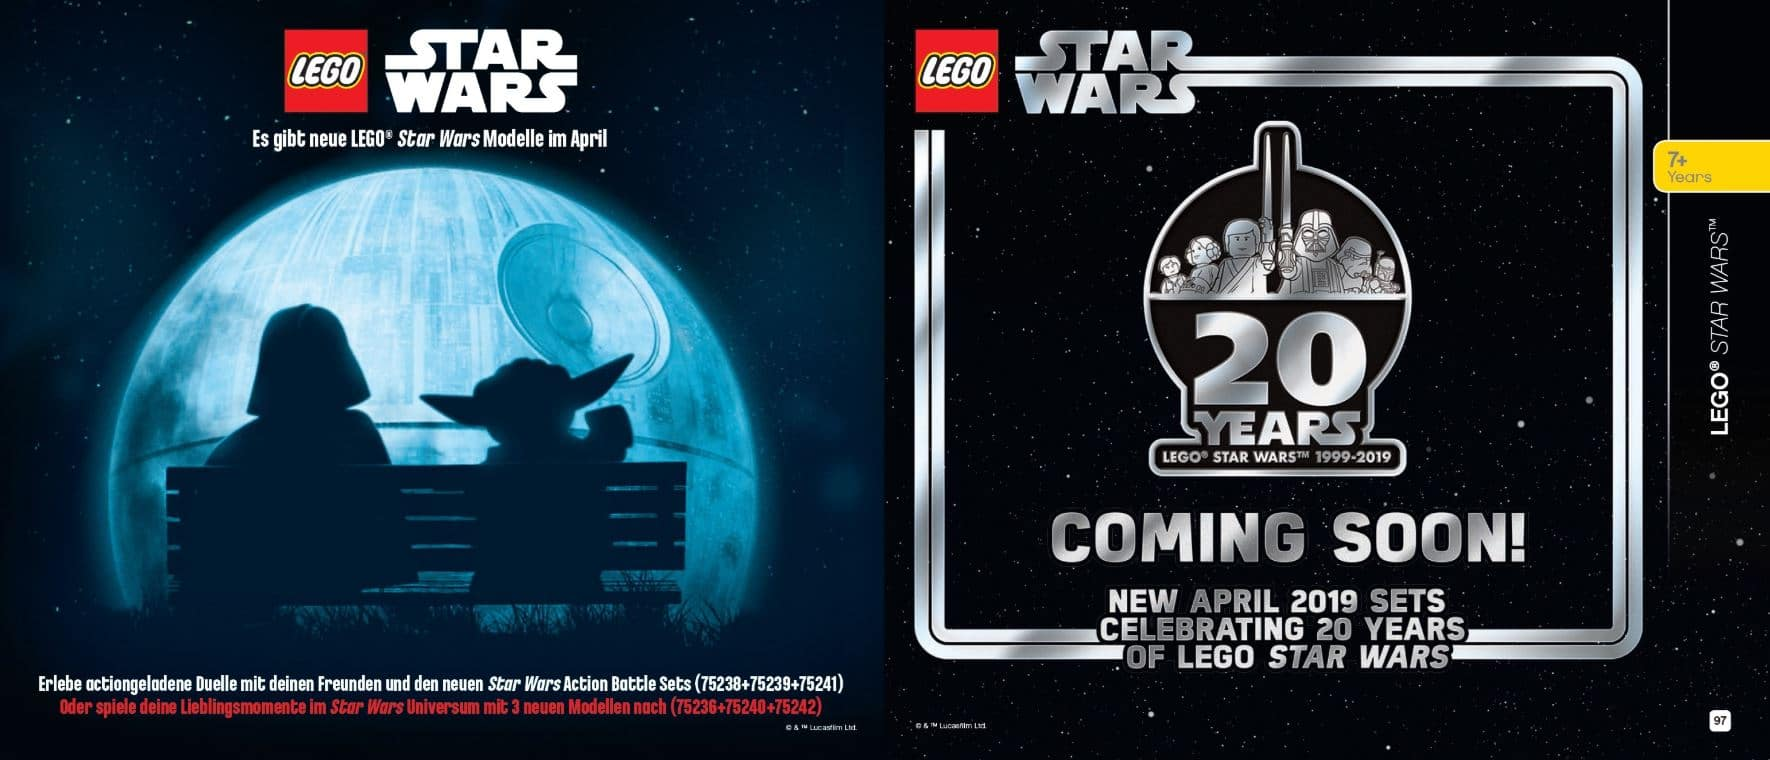 Neue LEGO Star Wars Sets im April 2019 Teaser